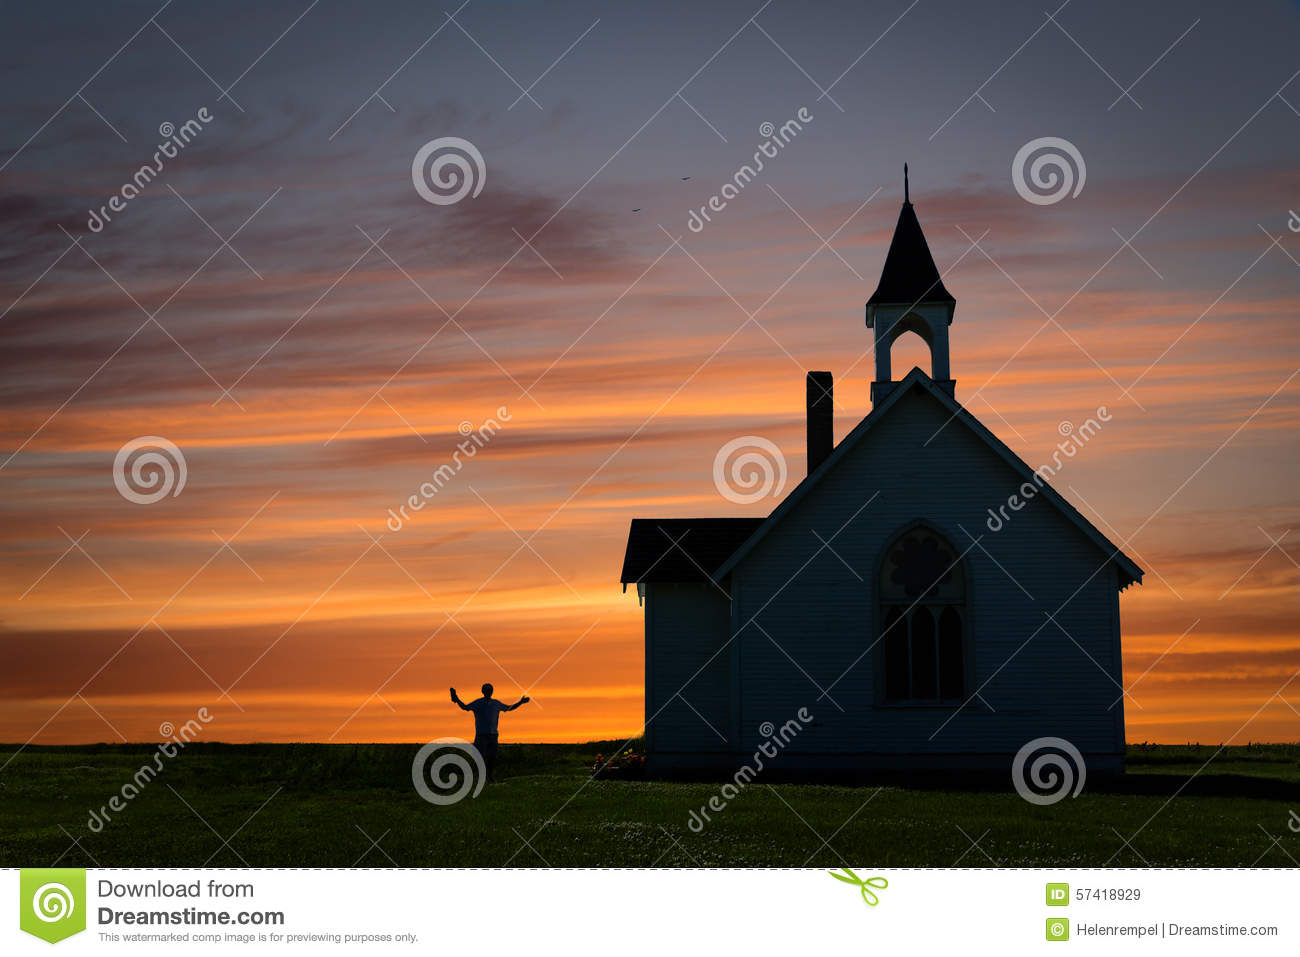 Beautiful Image Of A Church Silhouette Against Sunset Stock